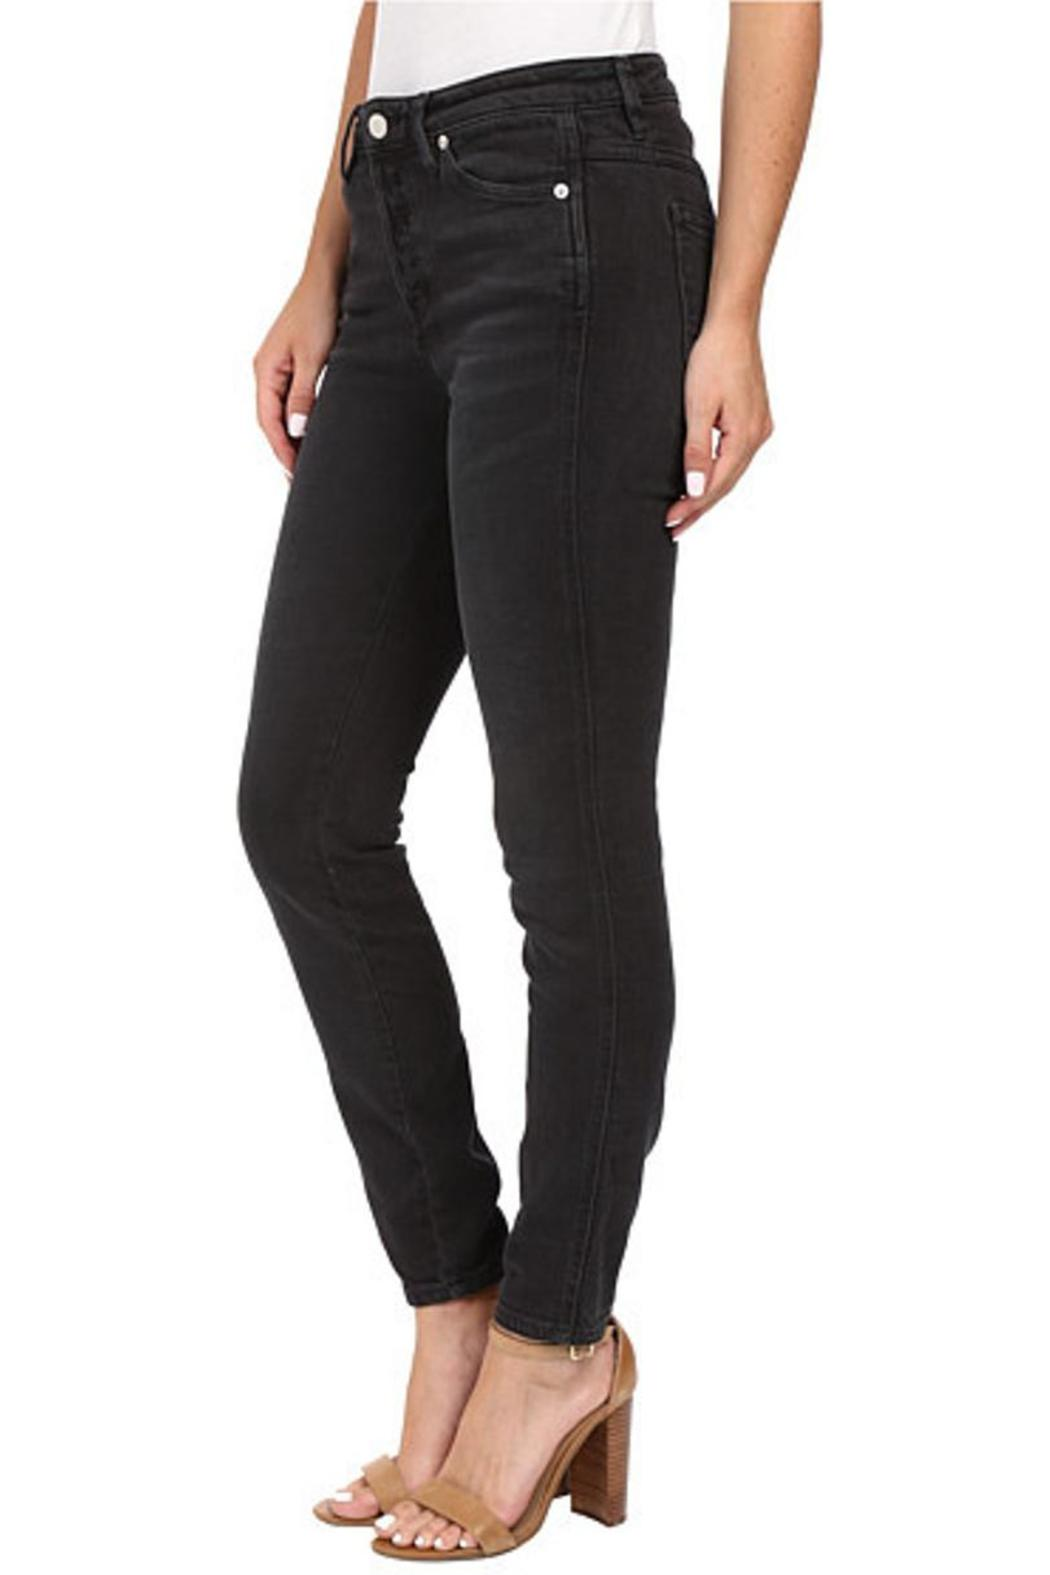 Free People Peyton High Rise Jeans - Side Cropped Image